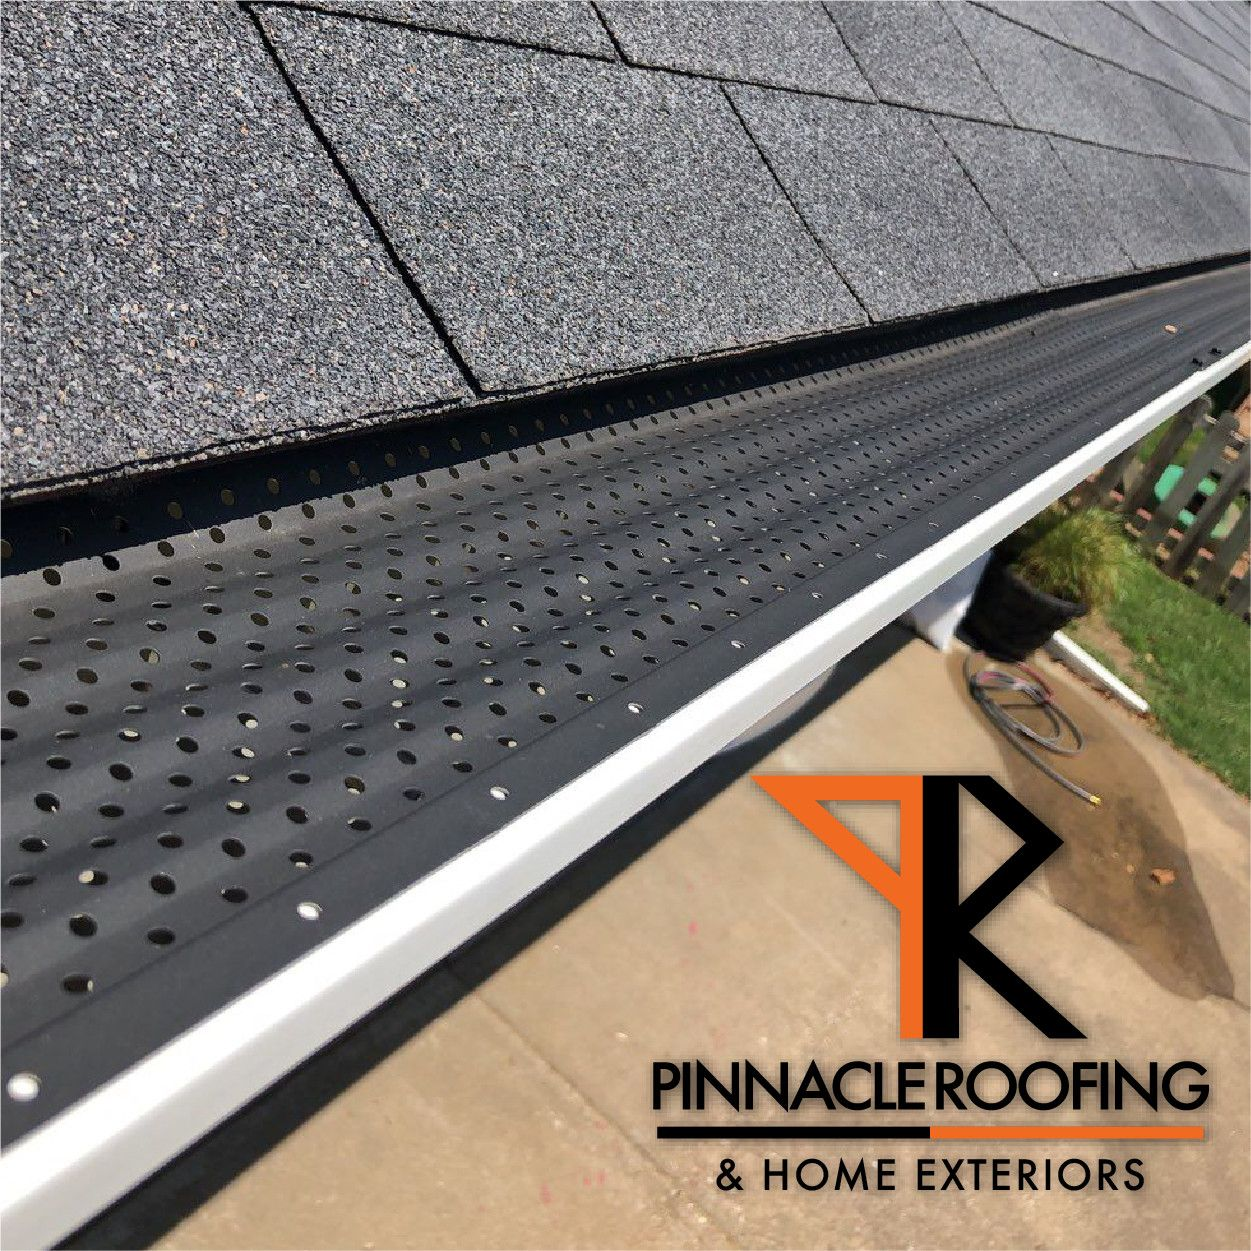 How Are Your Rain Gutters Holding Up Gutters Are Vital To Keeping Your Home Safe From Rainwater Give Pinnacle Roofing How To Install Gutters Gutters Roofing